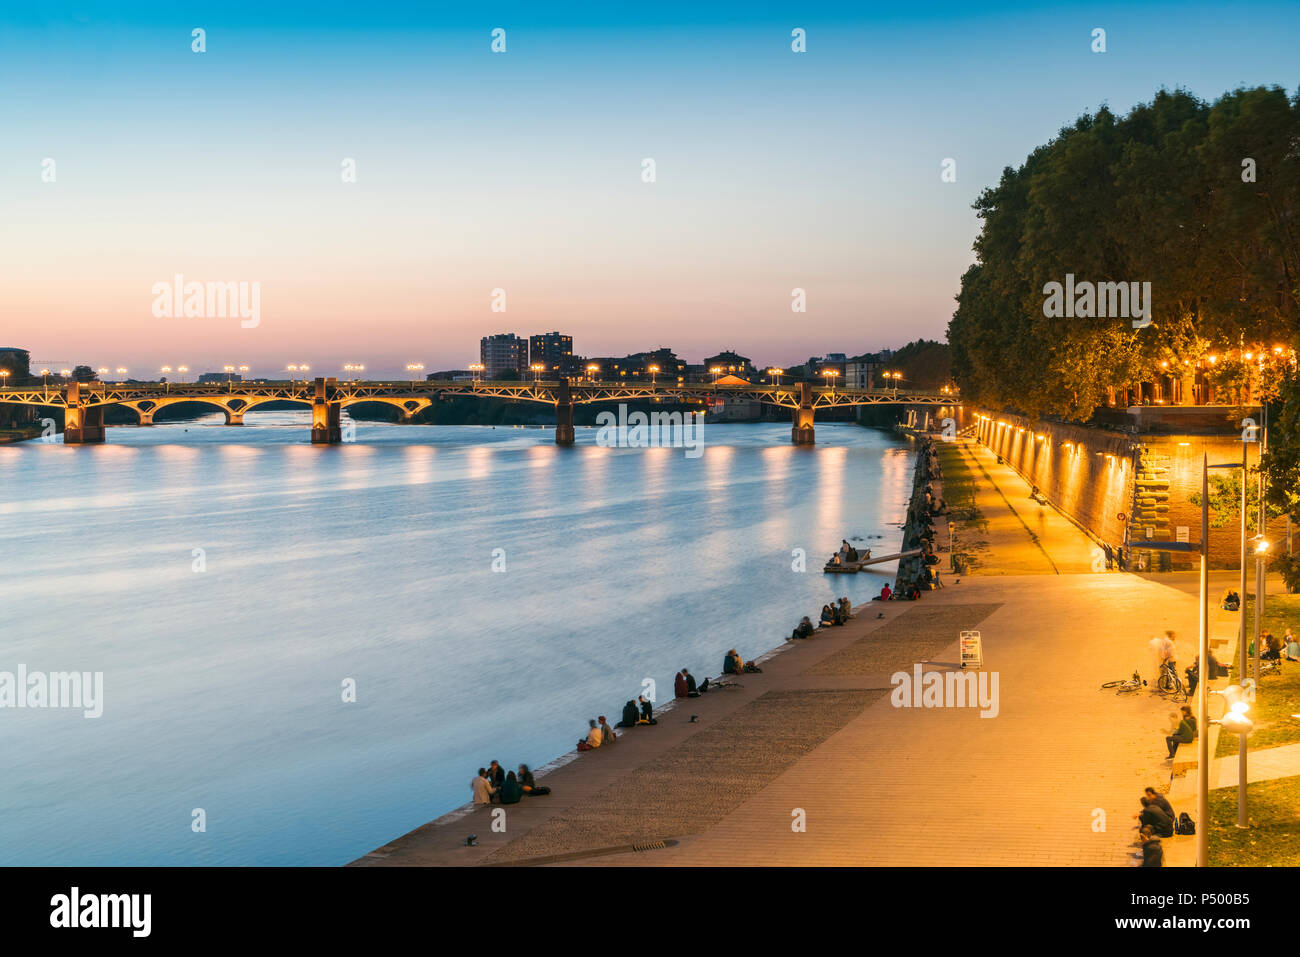 France, Haute-Garonne, Toulouse, Garonne River with Pont Saint Pierre and promenade in the evening light - Stock Image